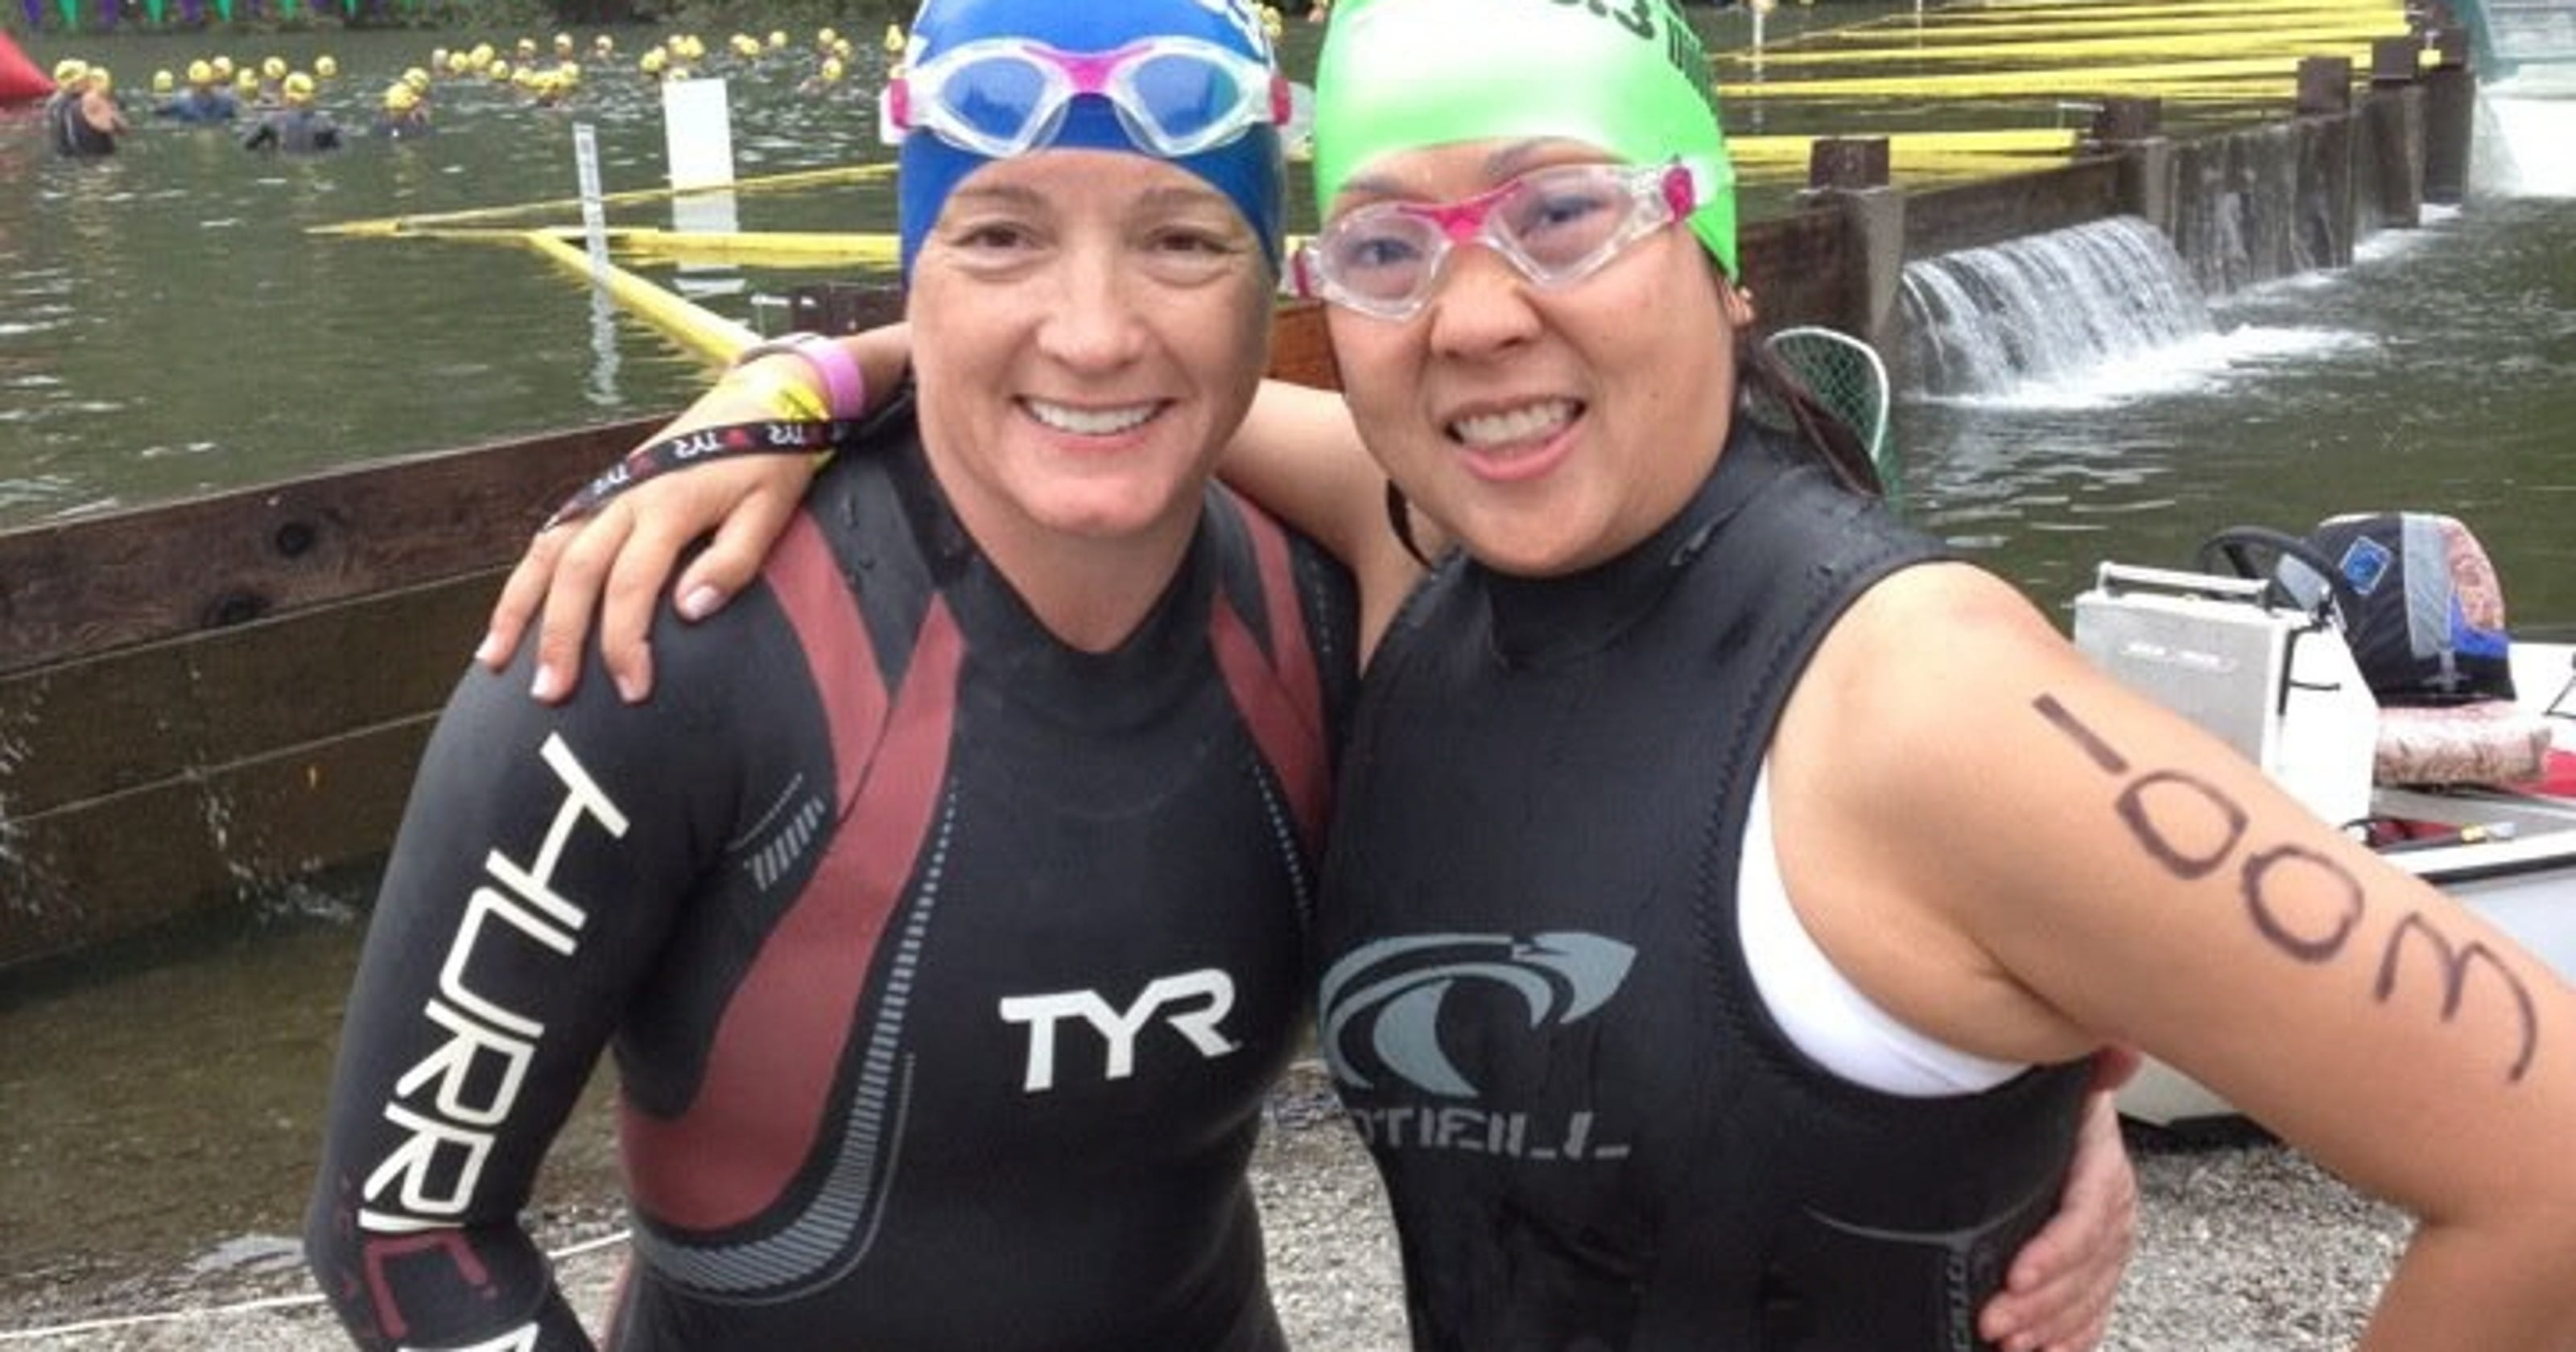 Swimming deaths trouble triathlon officials